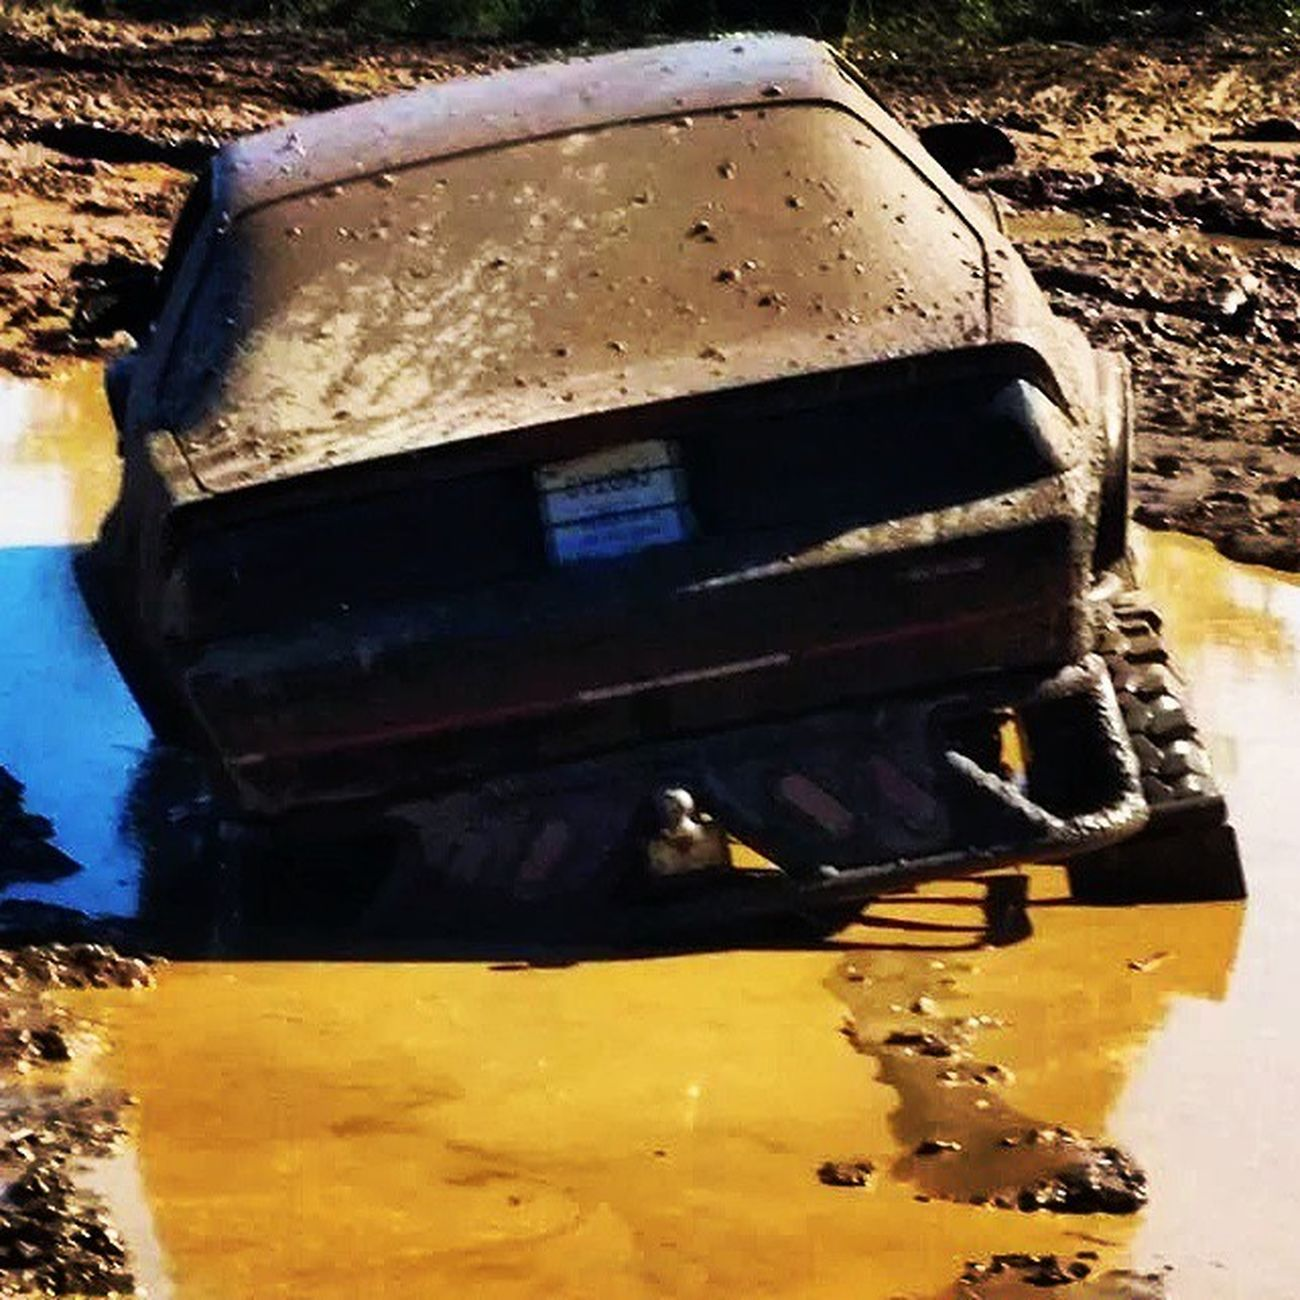 Another favorite at Stave Lake! The Jacked up Iroc! Stavelake Mudding Mud Mudbogging mountain sand lake puddles jackedup offroad 4wheel 4x4 getdirtyorgohome thisisthelife winch iroc @4wdtv